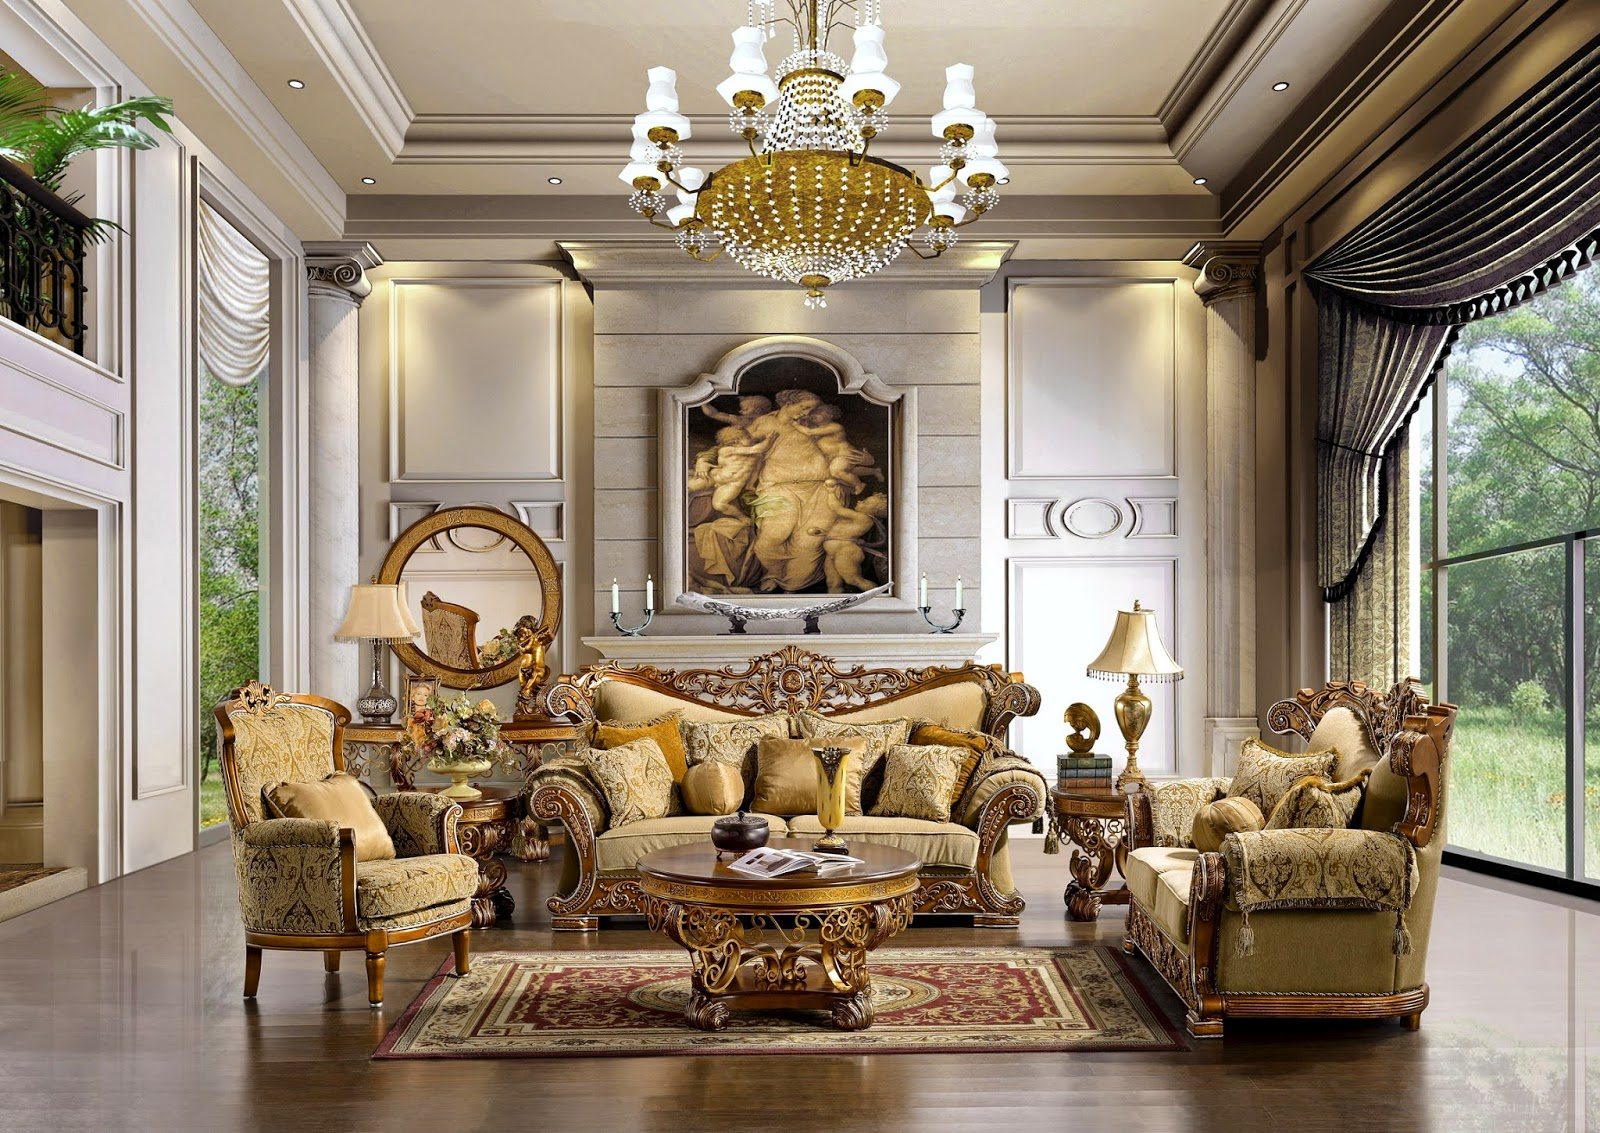 13 traditional living room ideas uk | home design hd wallpapers